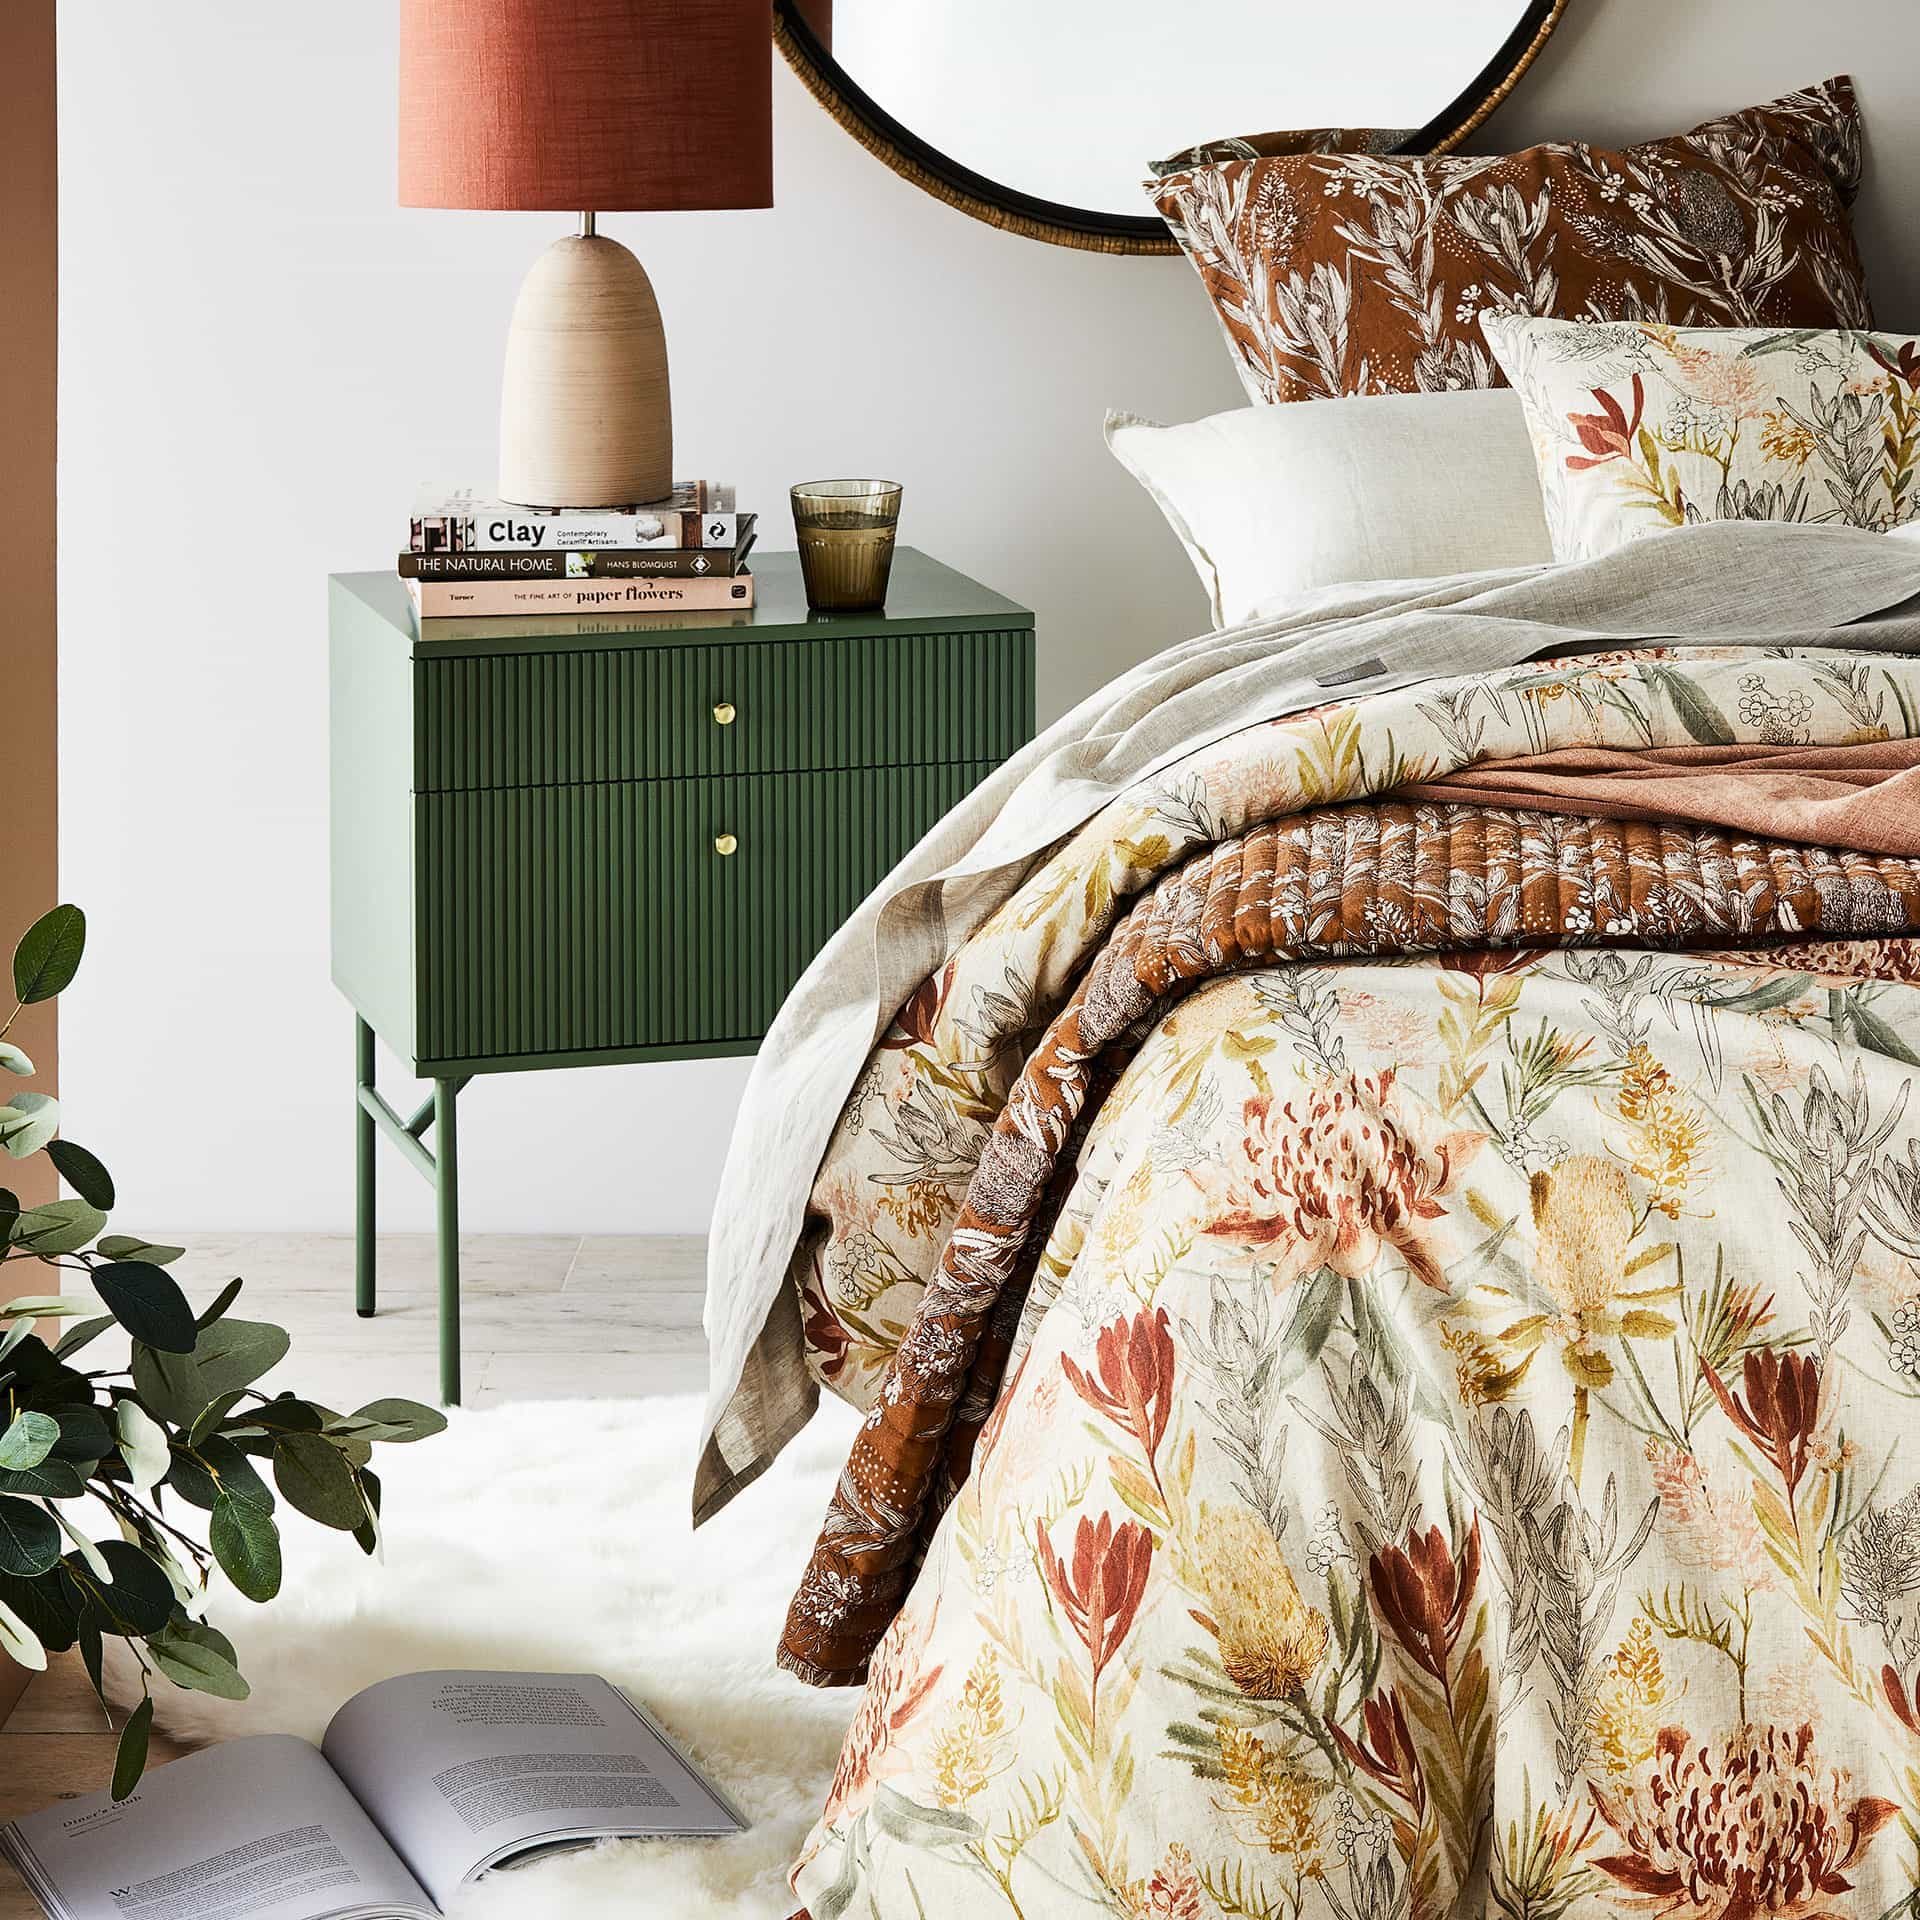 adairs floral quilt cover set native australian flowers bedding green bedside table